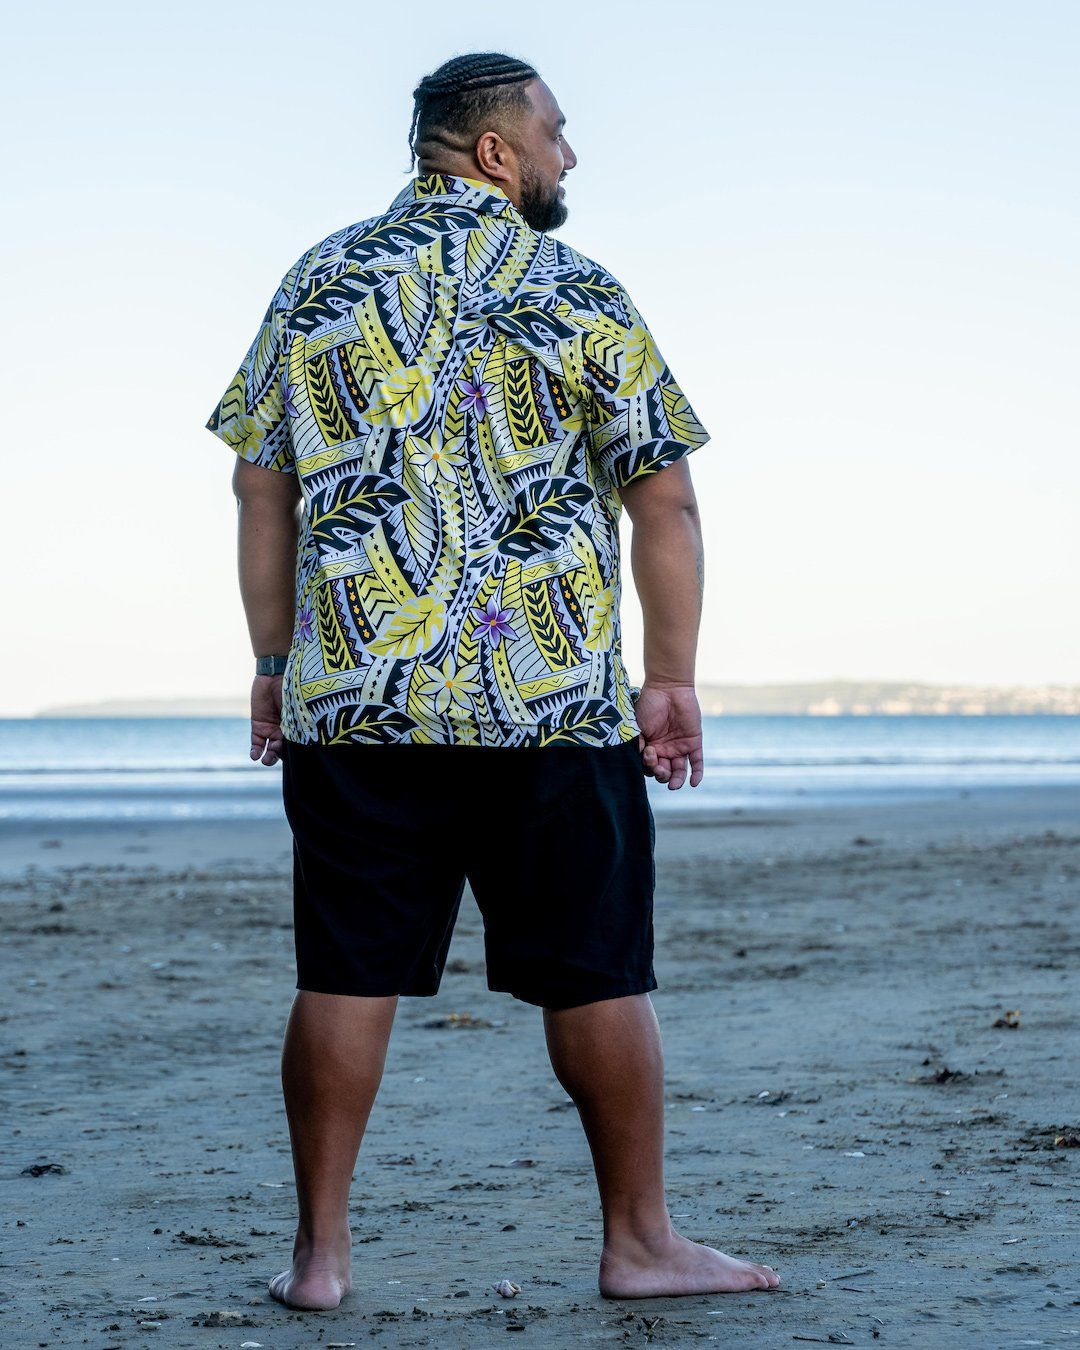 Kanoa Mens Short Sleeve Shirt - Island in The Sun